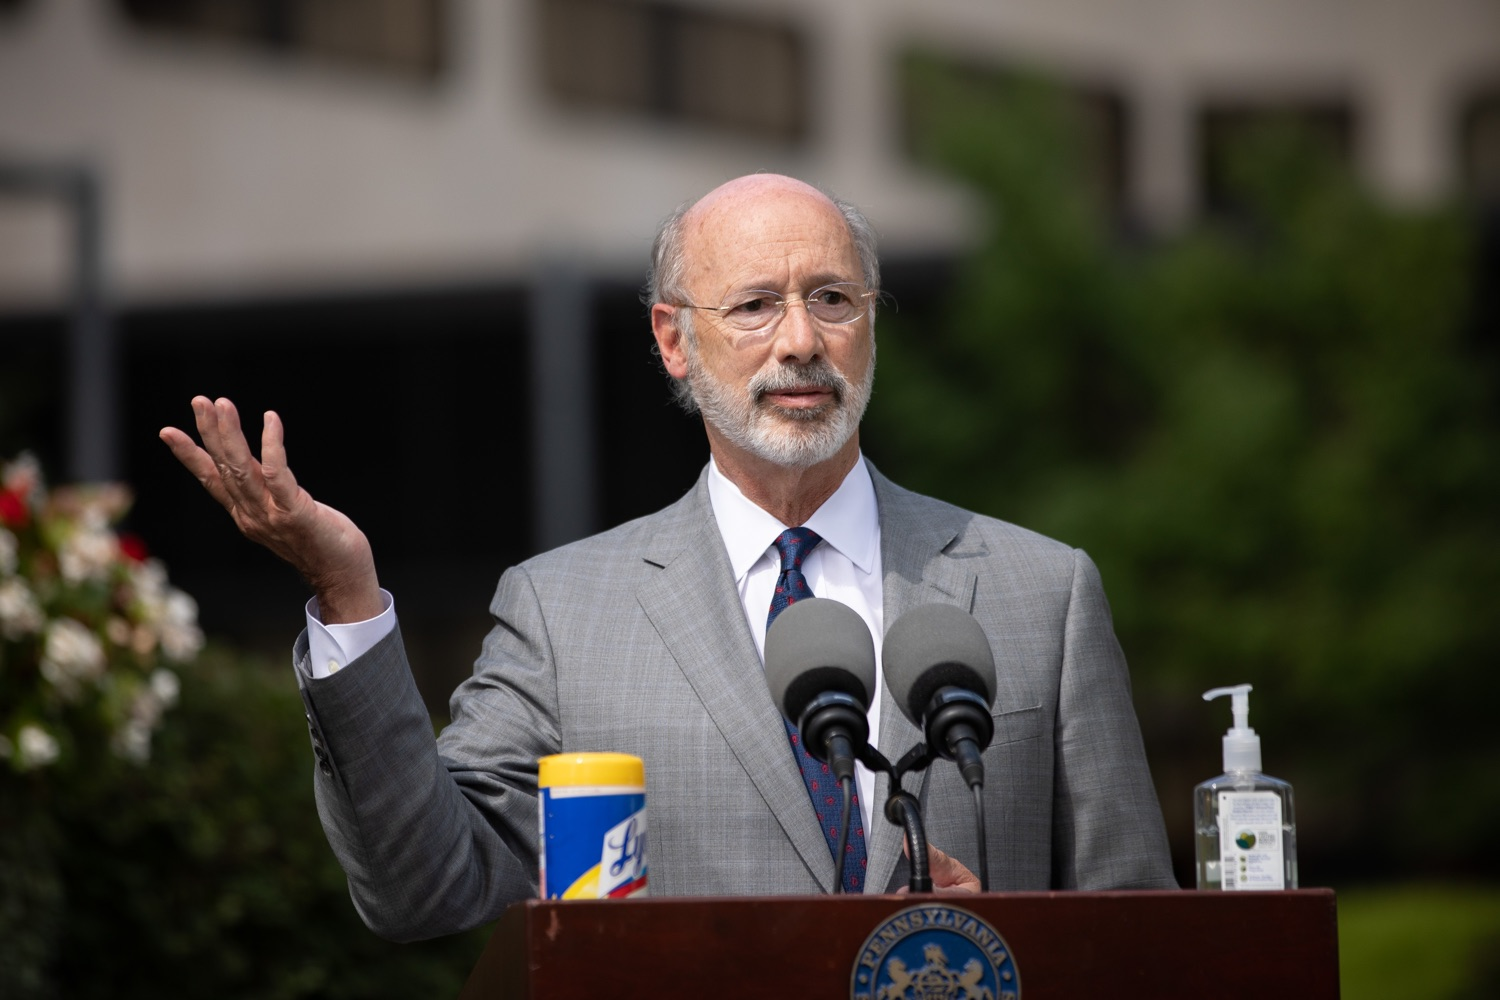 """<a href=""""https://filesource.wostreaming.net/commonwealthofpa/photo/18093_gov-healthcare_workers_dz_19.jpg"""" target=""""_blank"""">⇣Download Photo<br></a>Pennsylvania Governor Tom Wolf answering questions from the press during his visit to Milton S. Hershey Medical Center. As the commonwealth continues its measured, phased reopening and COVID-19 case counts continue to decline, Governor Tom Wolf visited Penn State Milton S. Hershey Medical Center today to thank staff and learn more about how the facility is handling the pandemic and preparing for a possible resurgence in the fall.  Harrisburg, PA  June 24, 2020"""